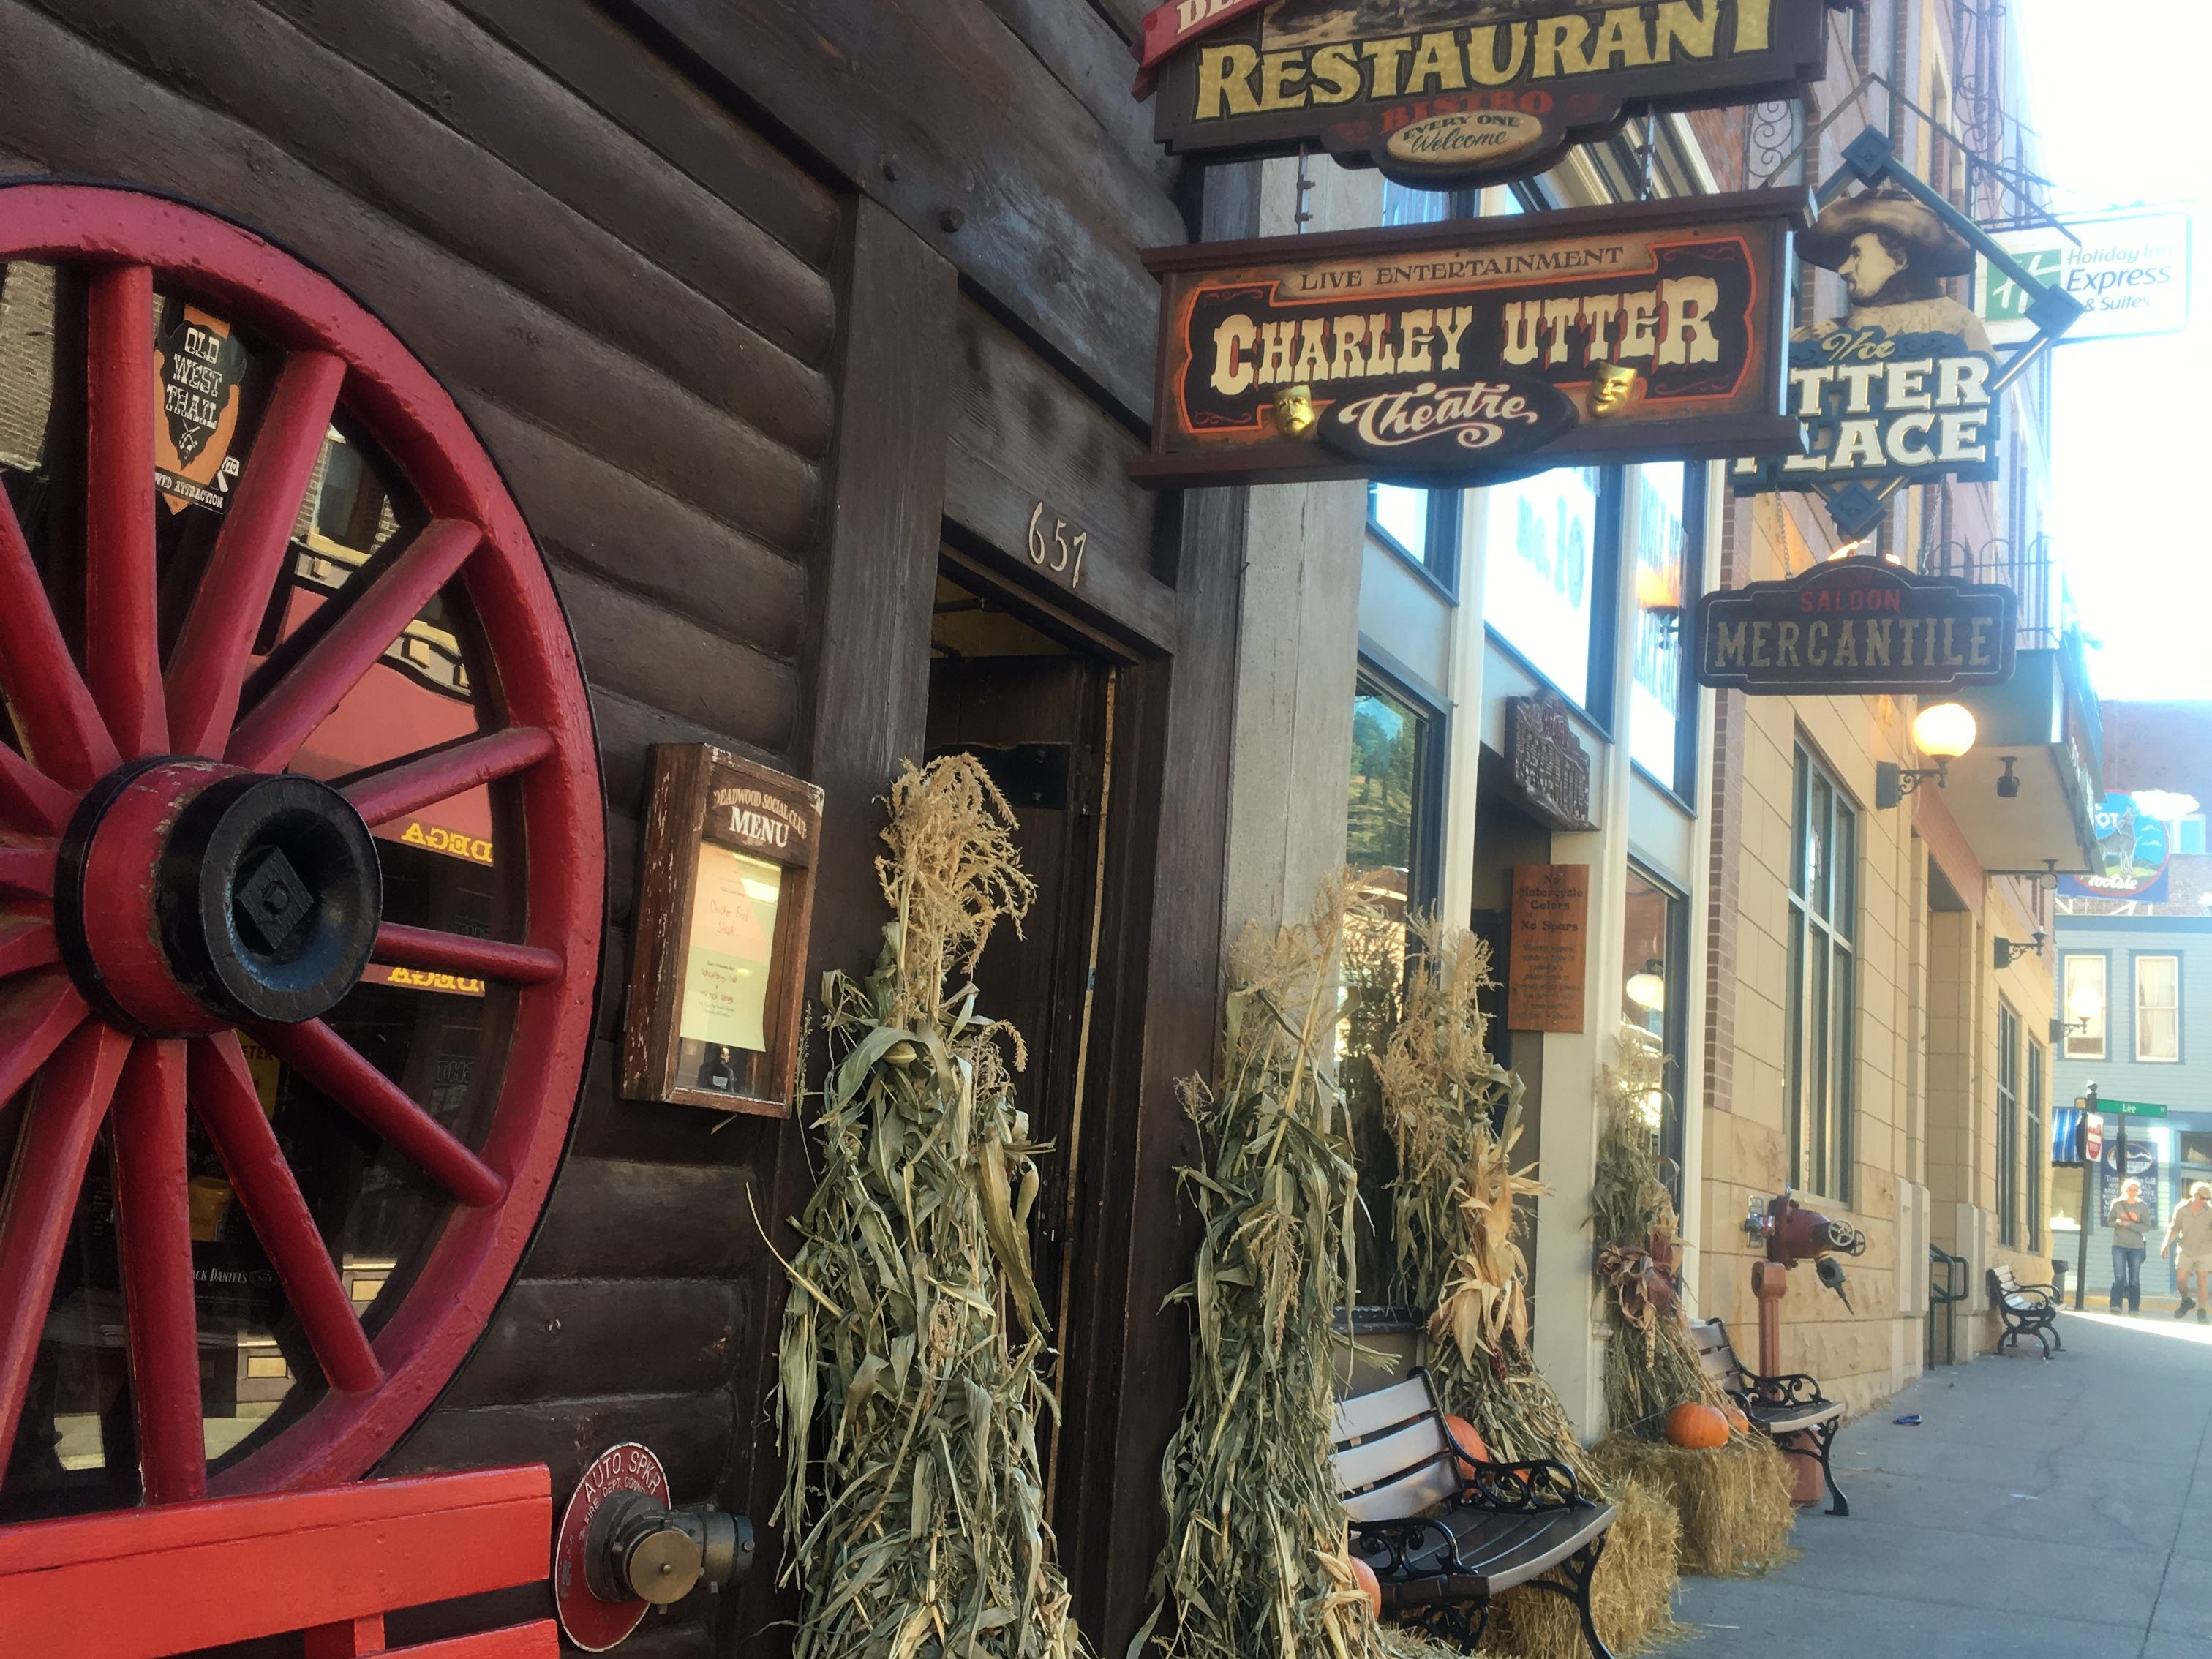 Deadwood, home of gunslingers, rowdy saloons and brothels.